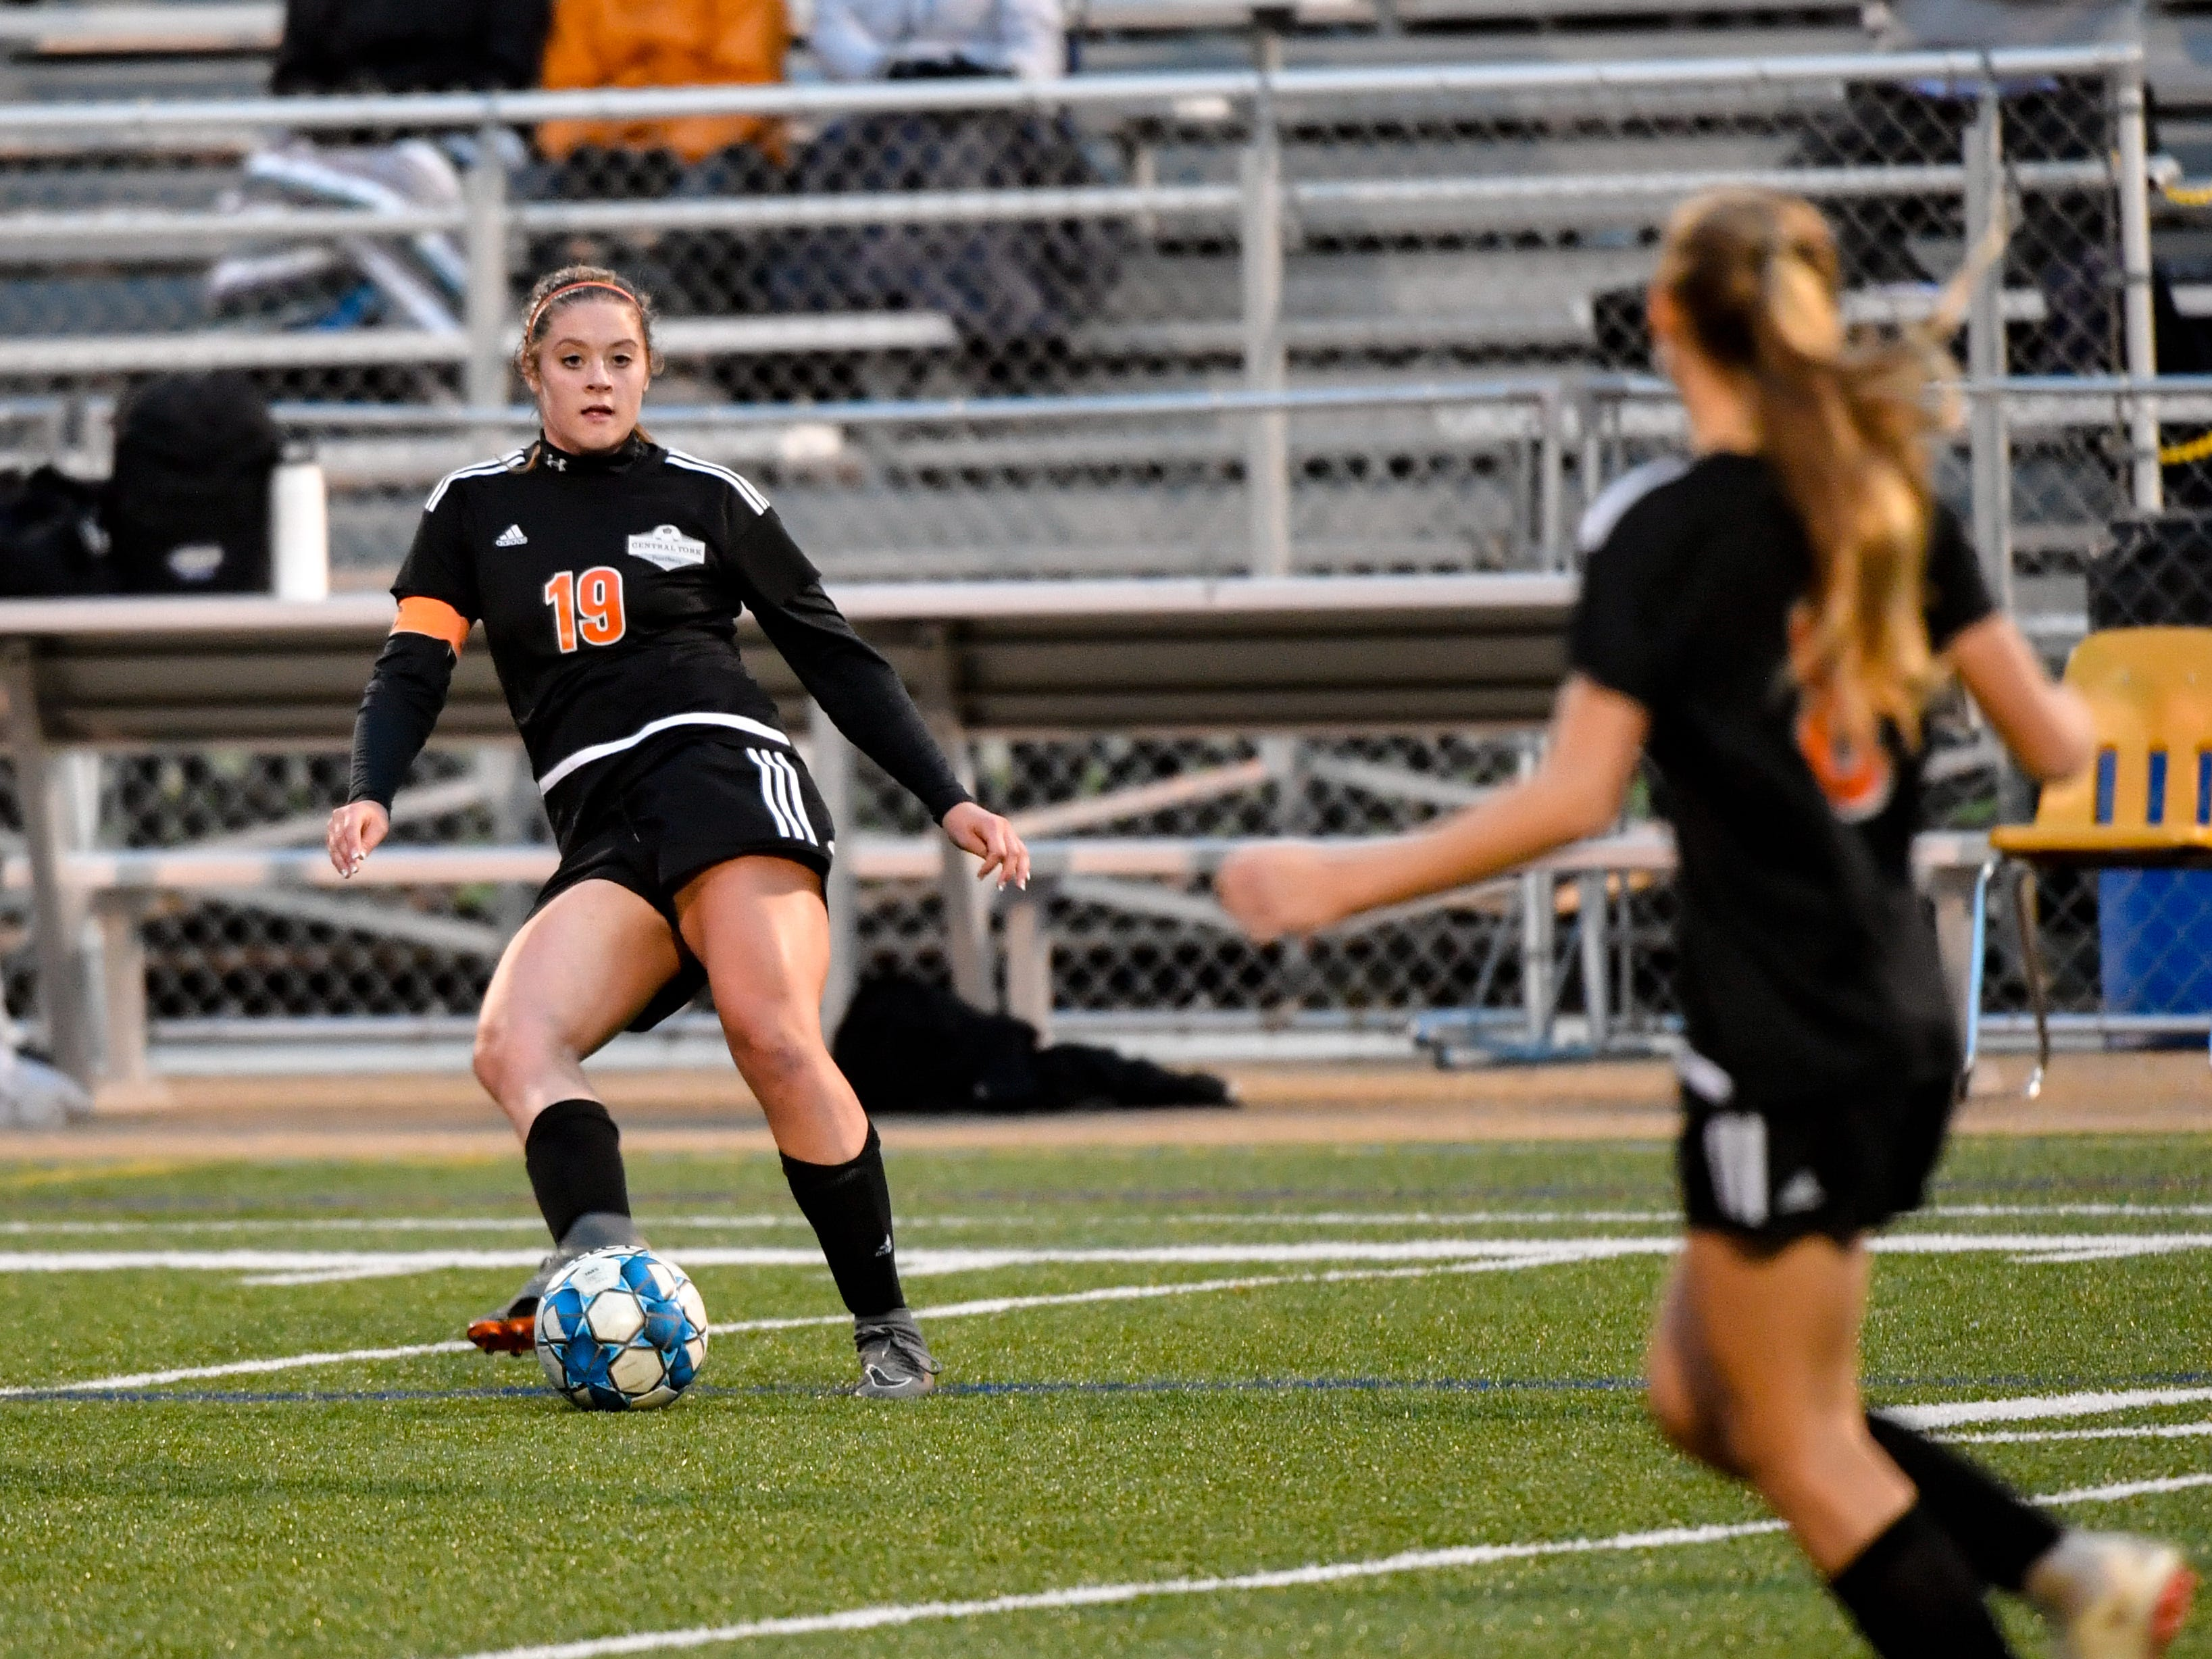 Hannah Ferguson (19) rockets a pass to her teammate during the girls soccer game between Littlestown and Central York, October 16, 2018. The Panthers beat the Bolts 6-1.